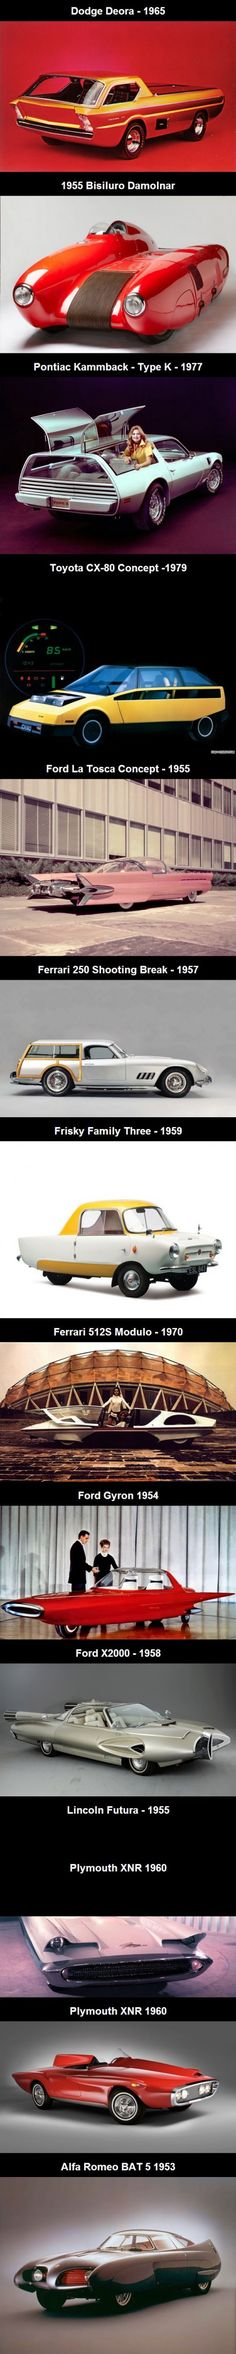 Strange Concept Car Prototypes from the 1950s-1970s